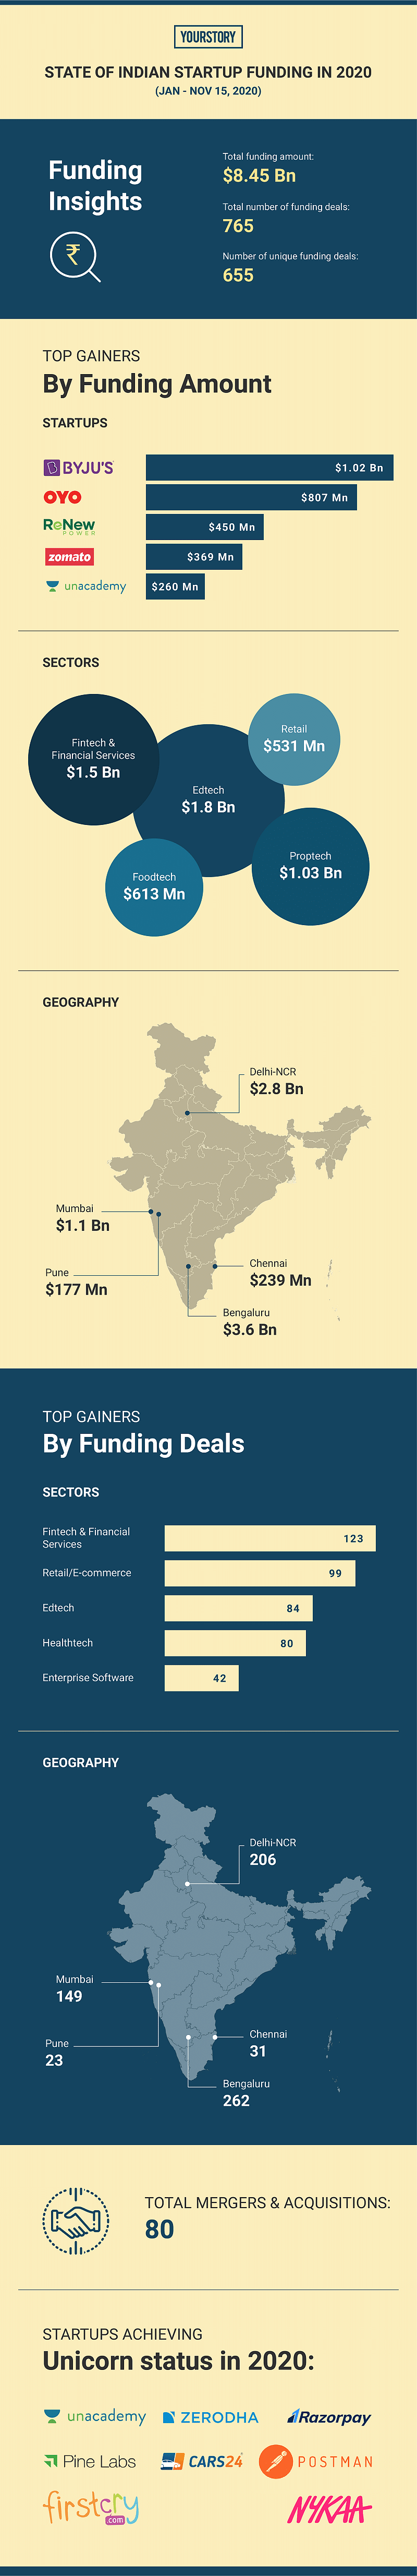 State of Indian startup funding